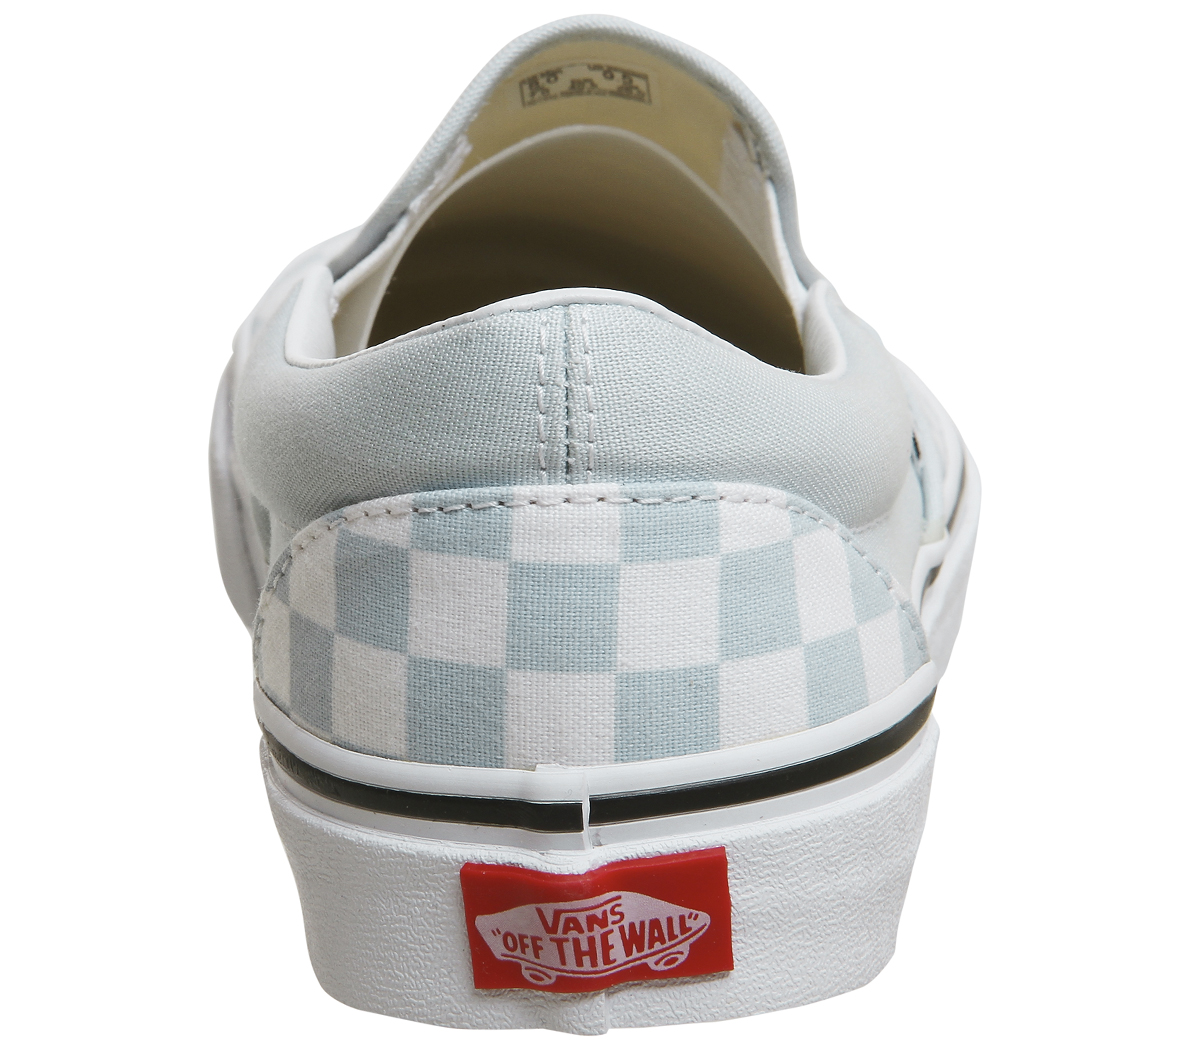 46c7e61d3cdc8a Sentinel Womens Vans Vans Classic Slip On Trainers BABY BLUE WHITE  CHECKERBOARD Trainers